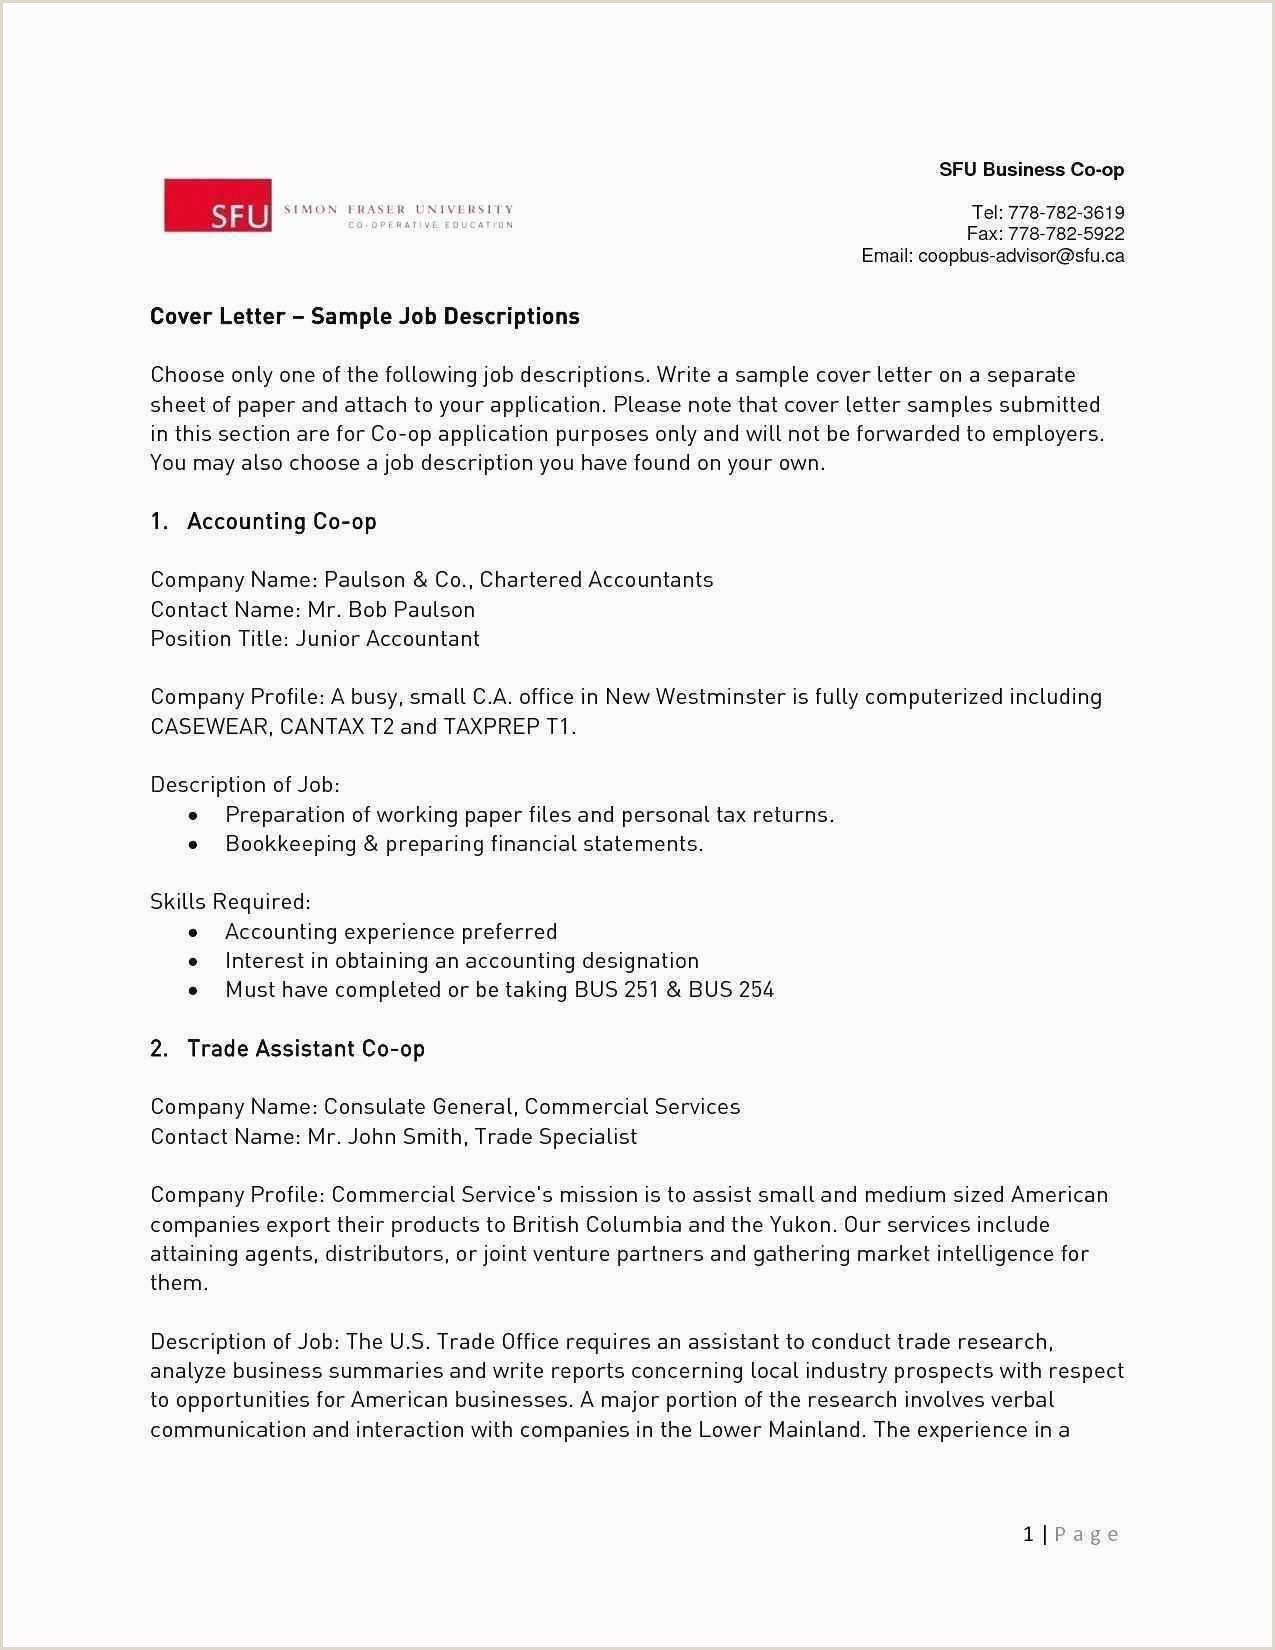 Resume format for A Job Application Accountant Resume Examples Best Cover Sheet for Resume Best